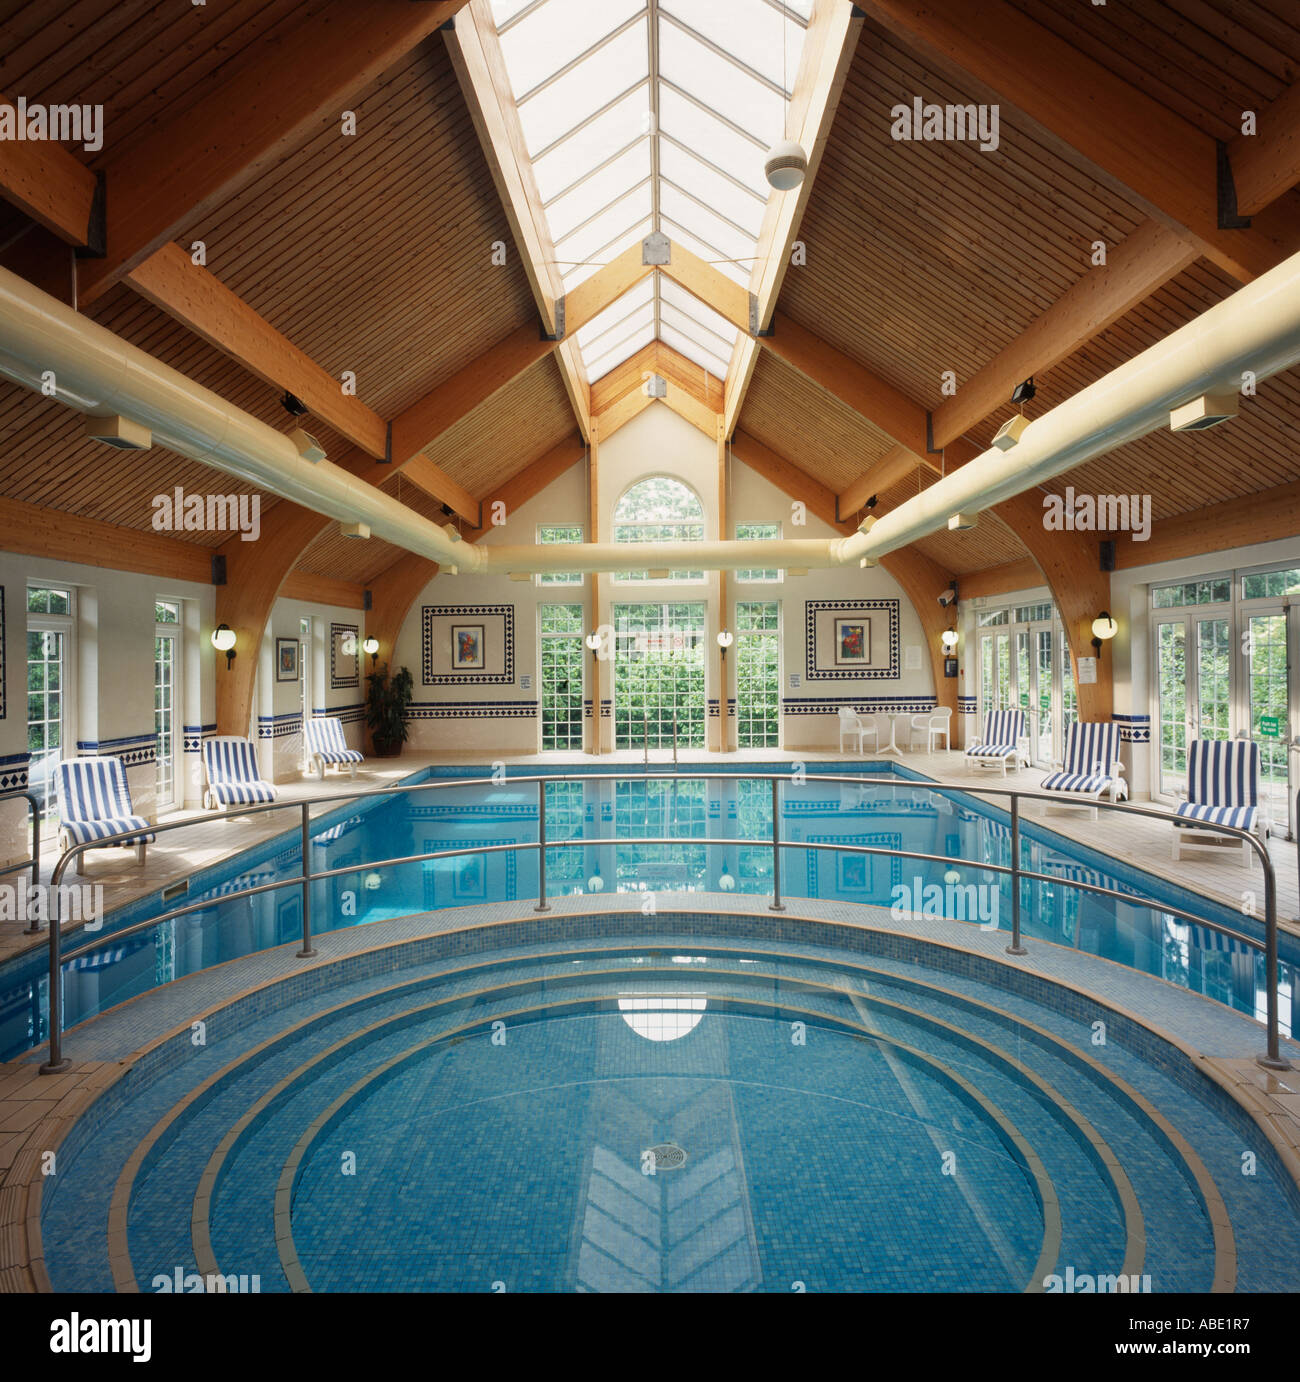 Circular Shallow Pool Above Large Hotel Indoor Swimming Pool With Stock Photo Royalty Free